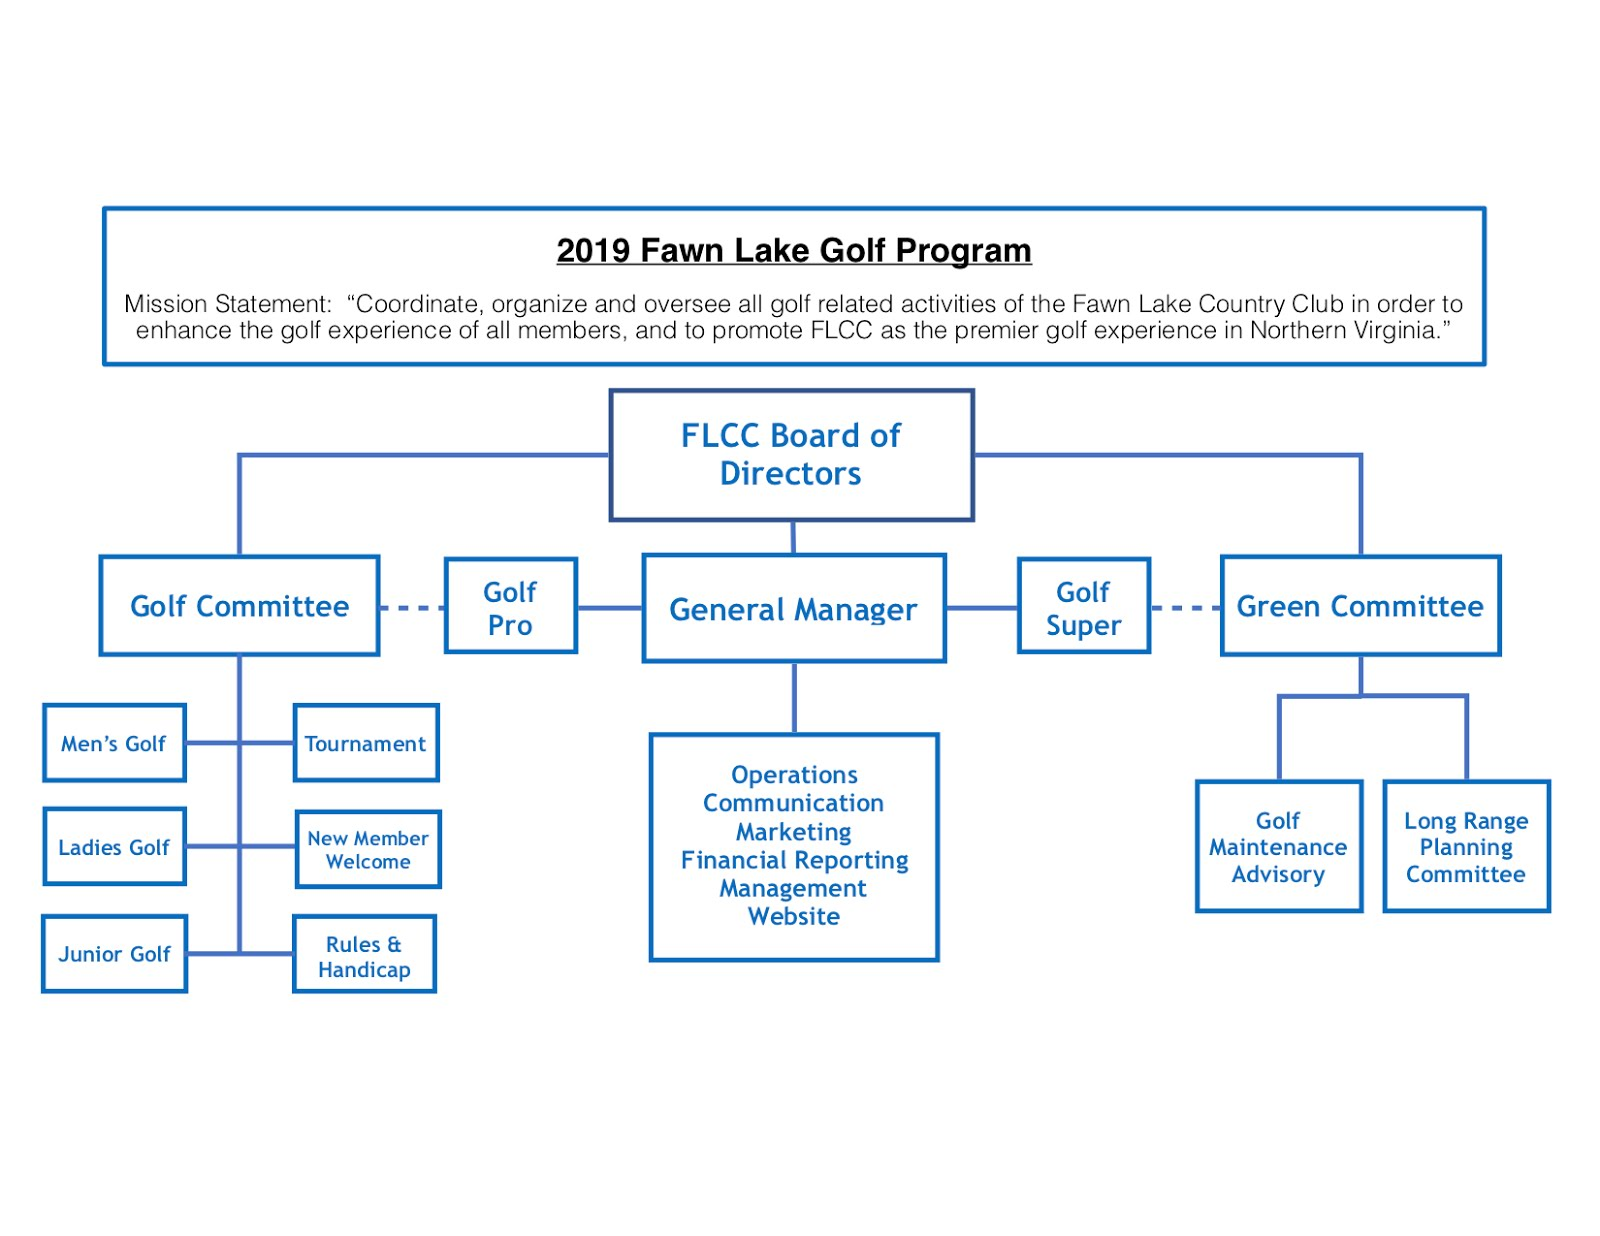 FLCC Golf Program Mission Statement & Organizational Flowchart